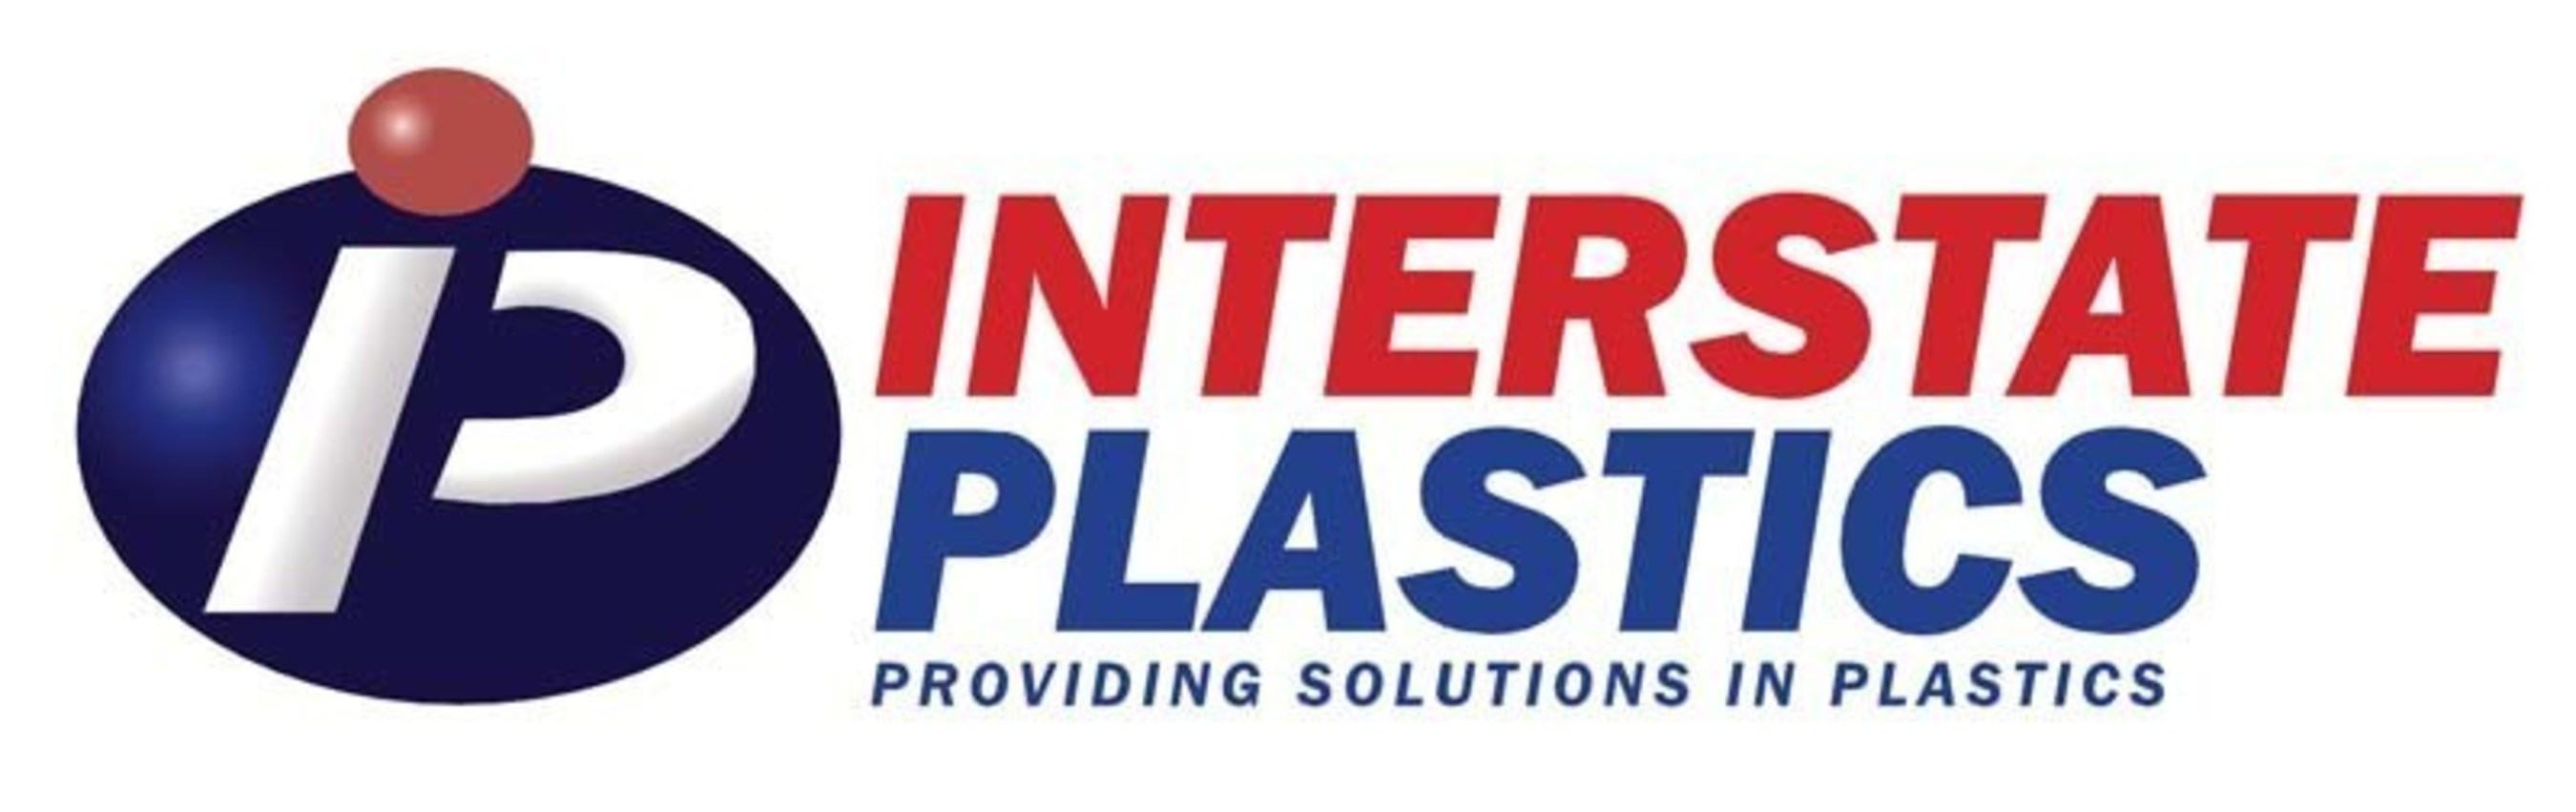 Interstate Plastics Provides Solutions in Plastic at MD&M West 2015